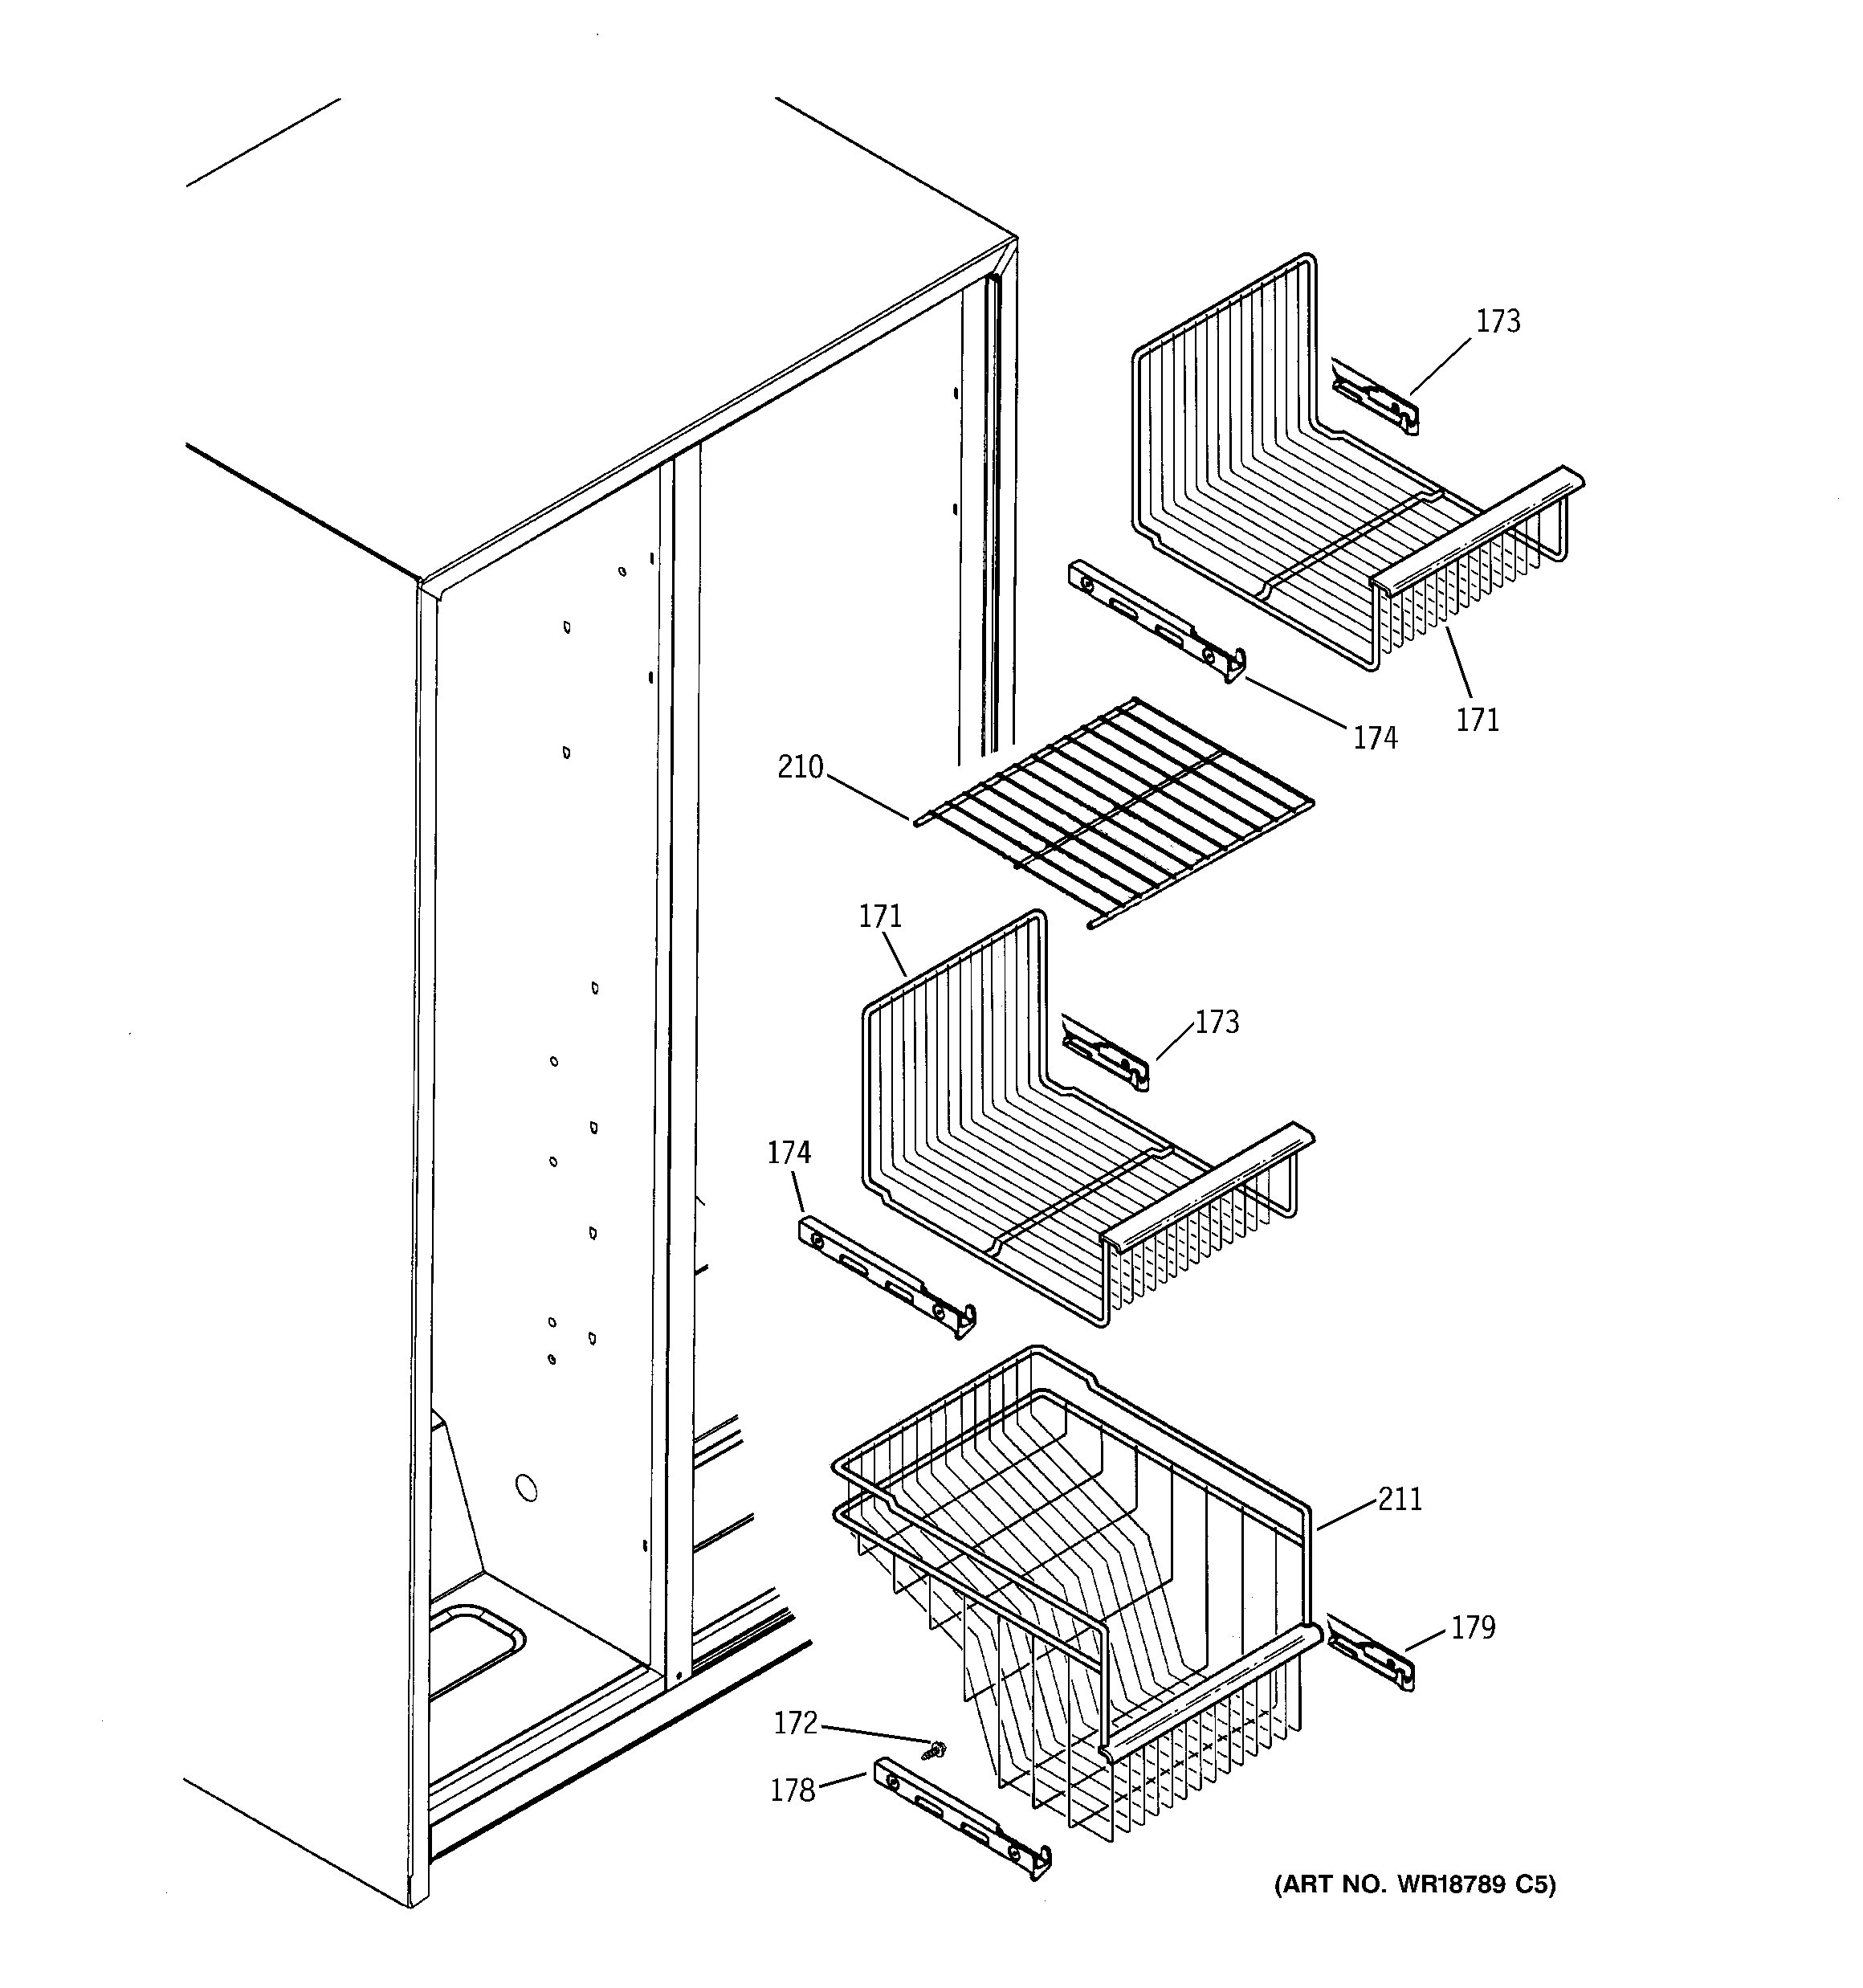 GE GSH22VGPACC freezer shelves diagram